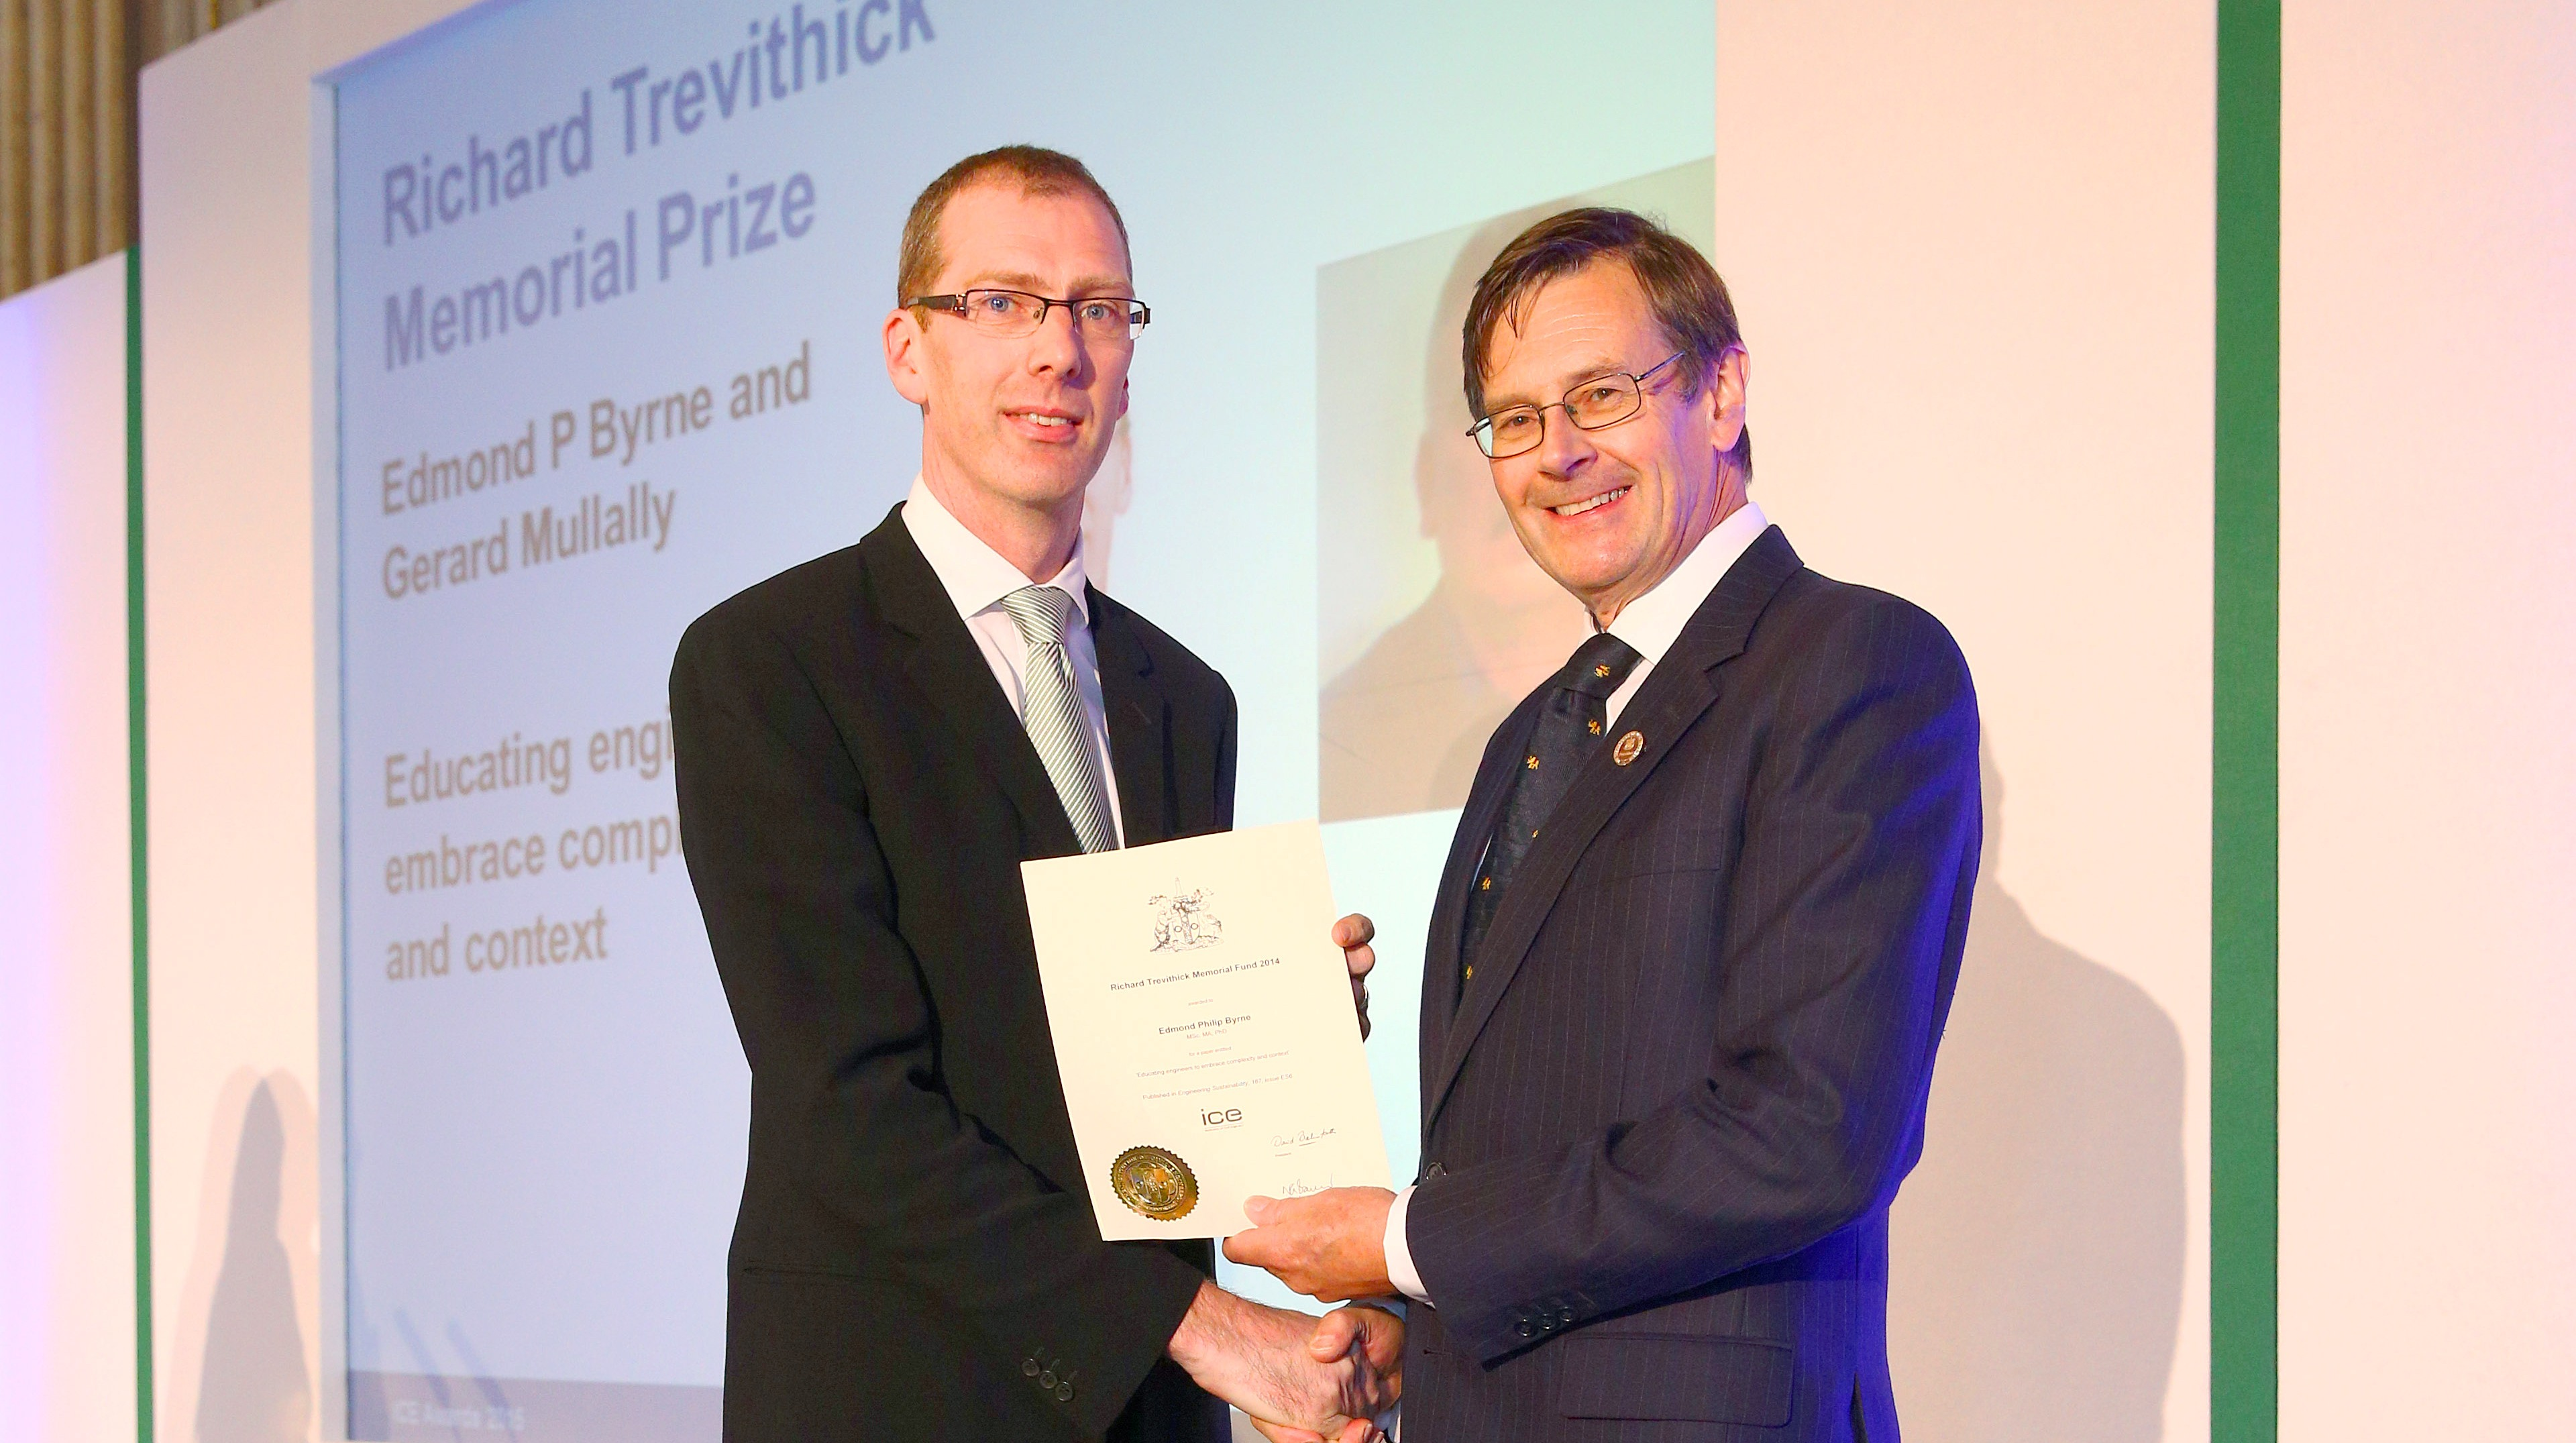 Dr Edmond Byrne Awarded Trevithick Prize for UCC Engineering Education Research